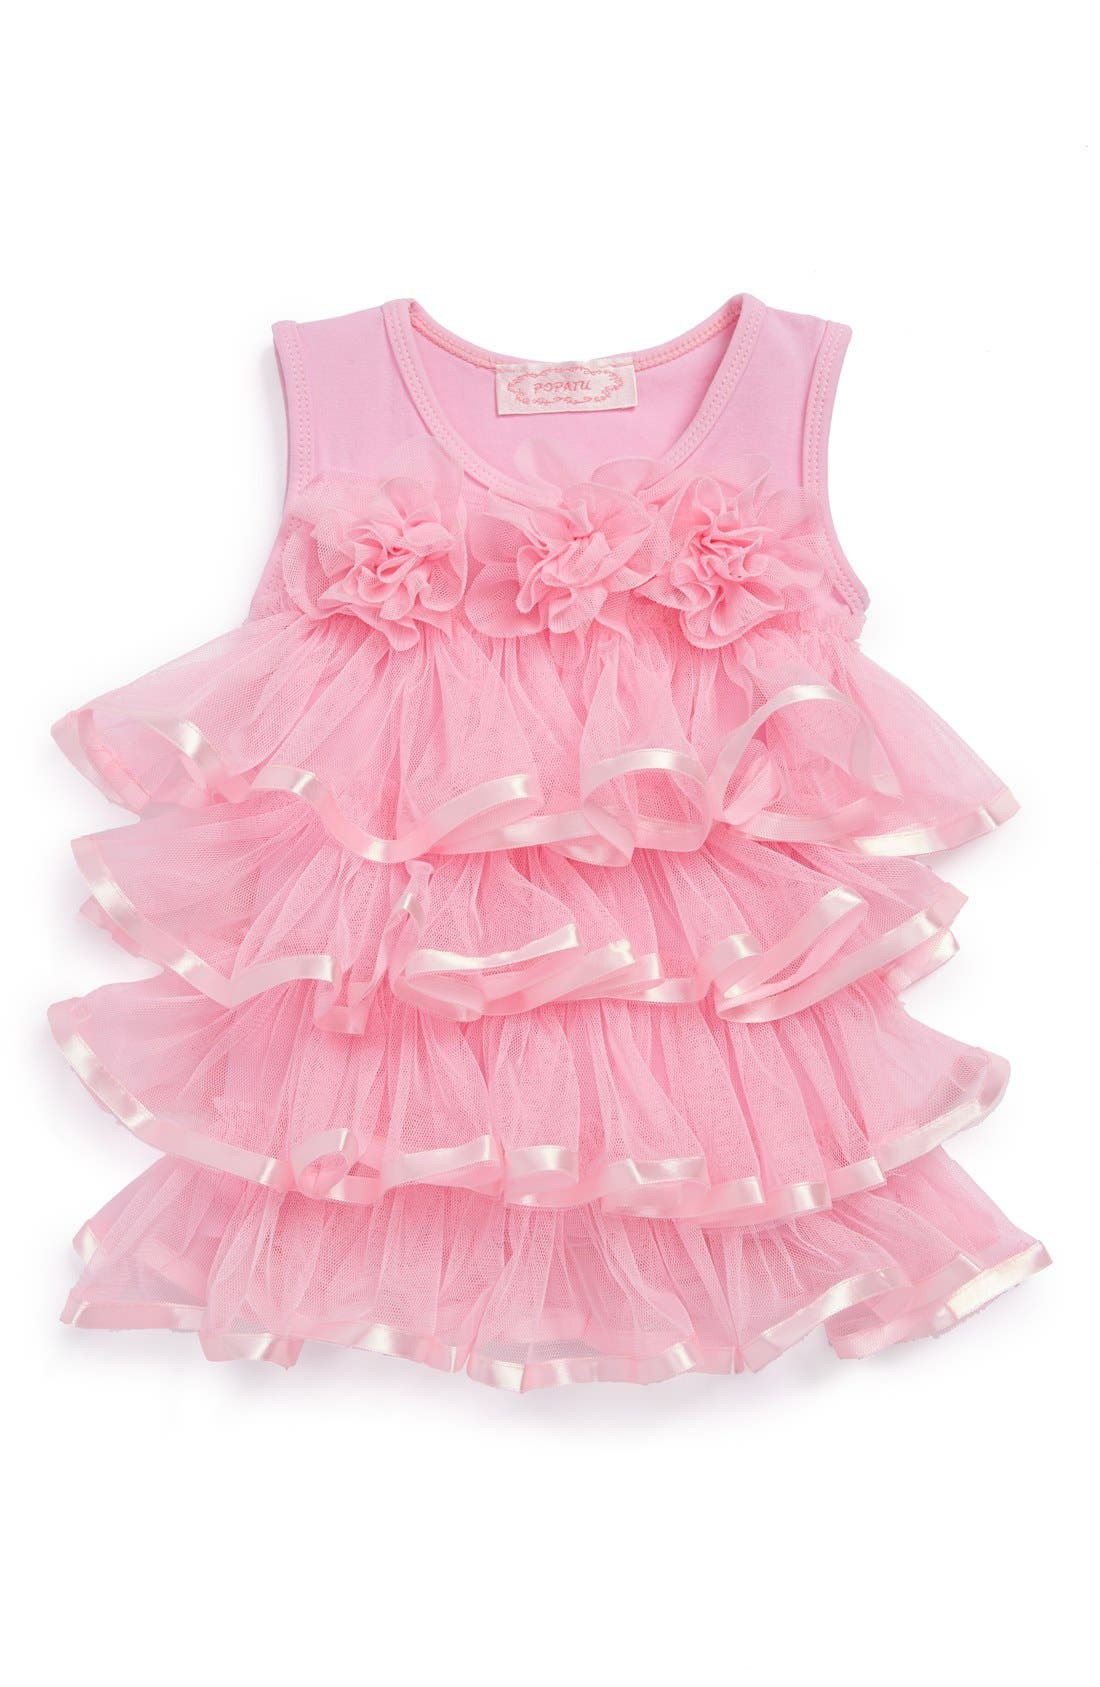 Ruffle Tiered Dress,                             Main thumbnail 1, color,                             650